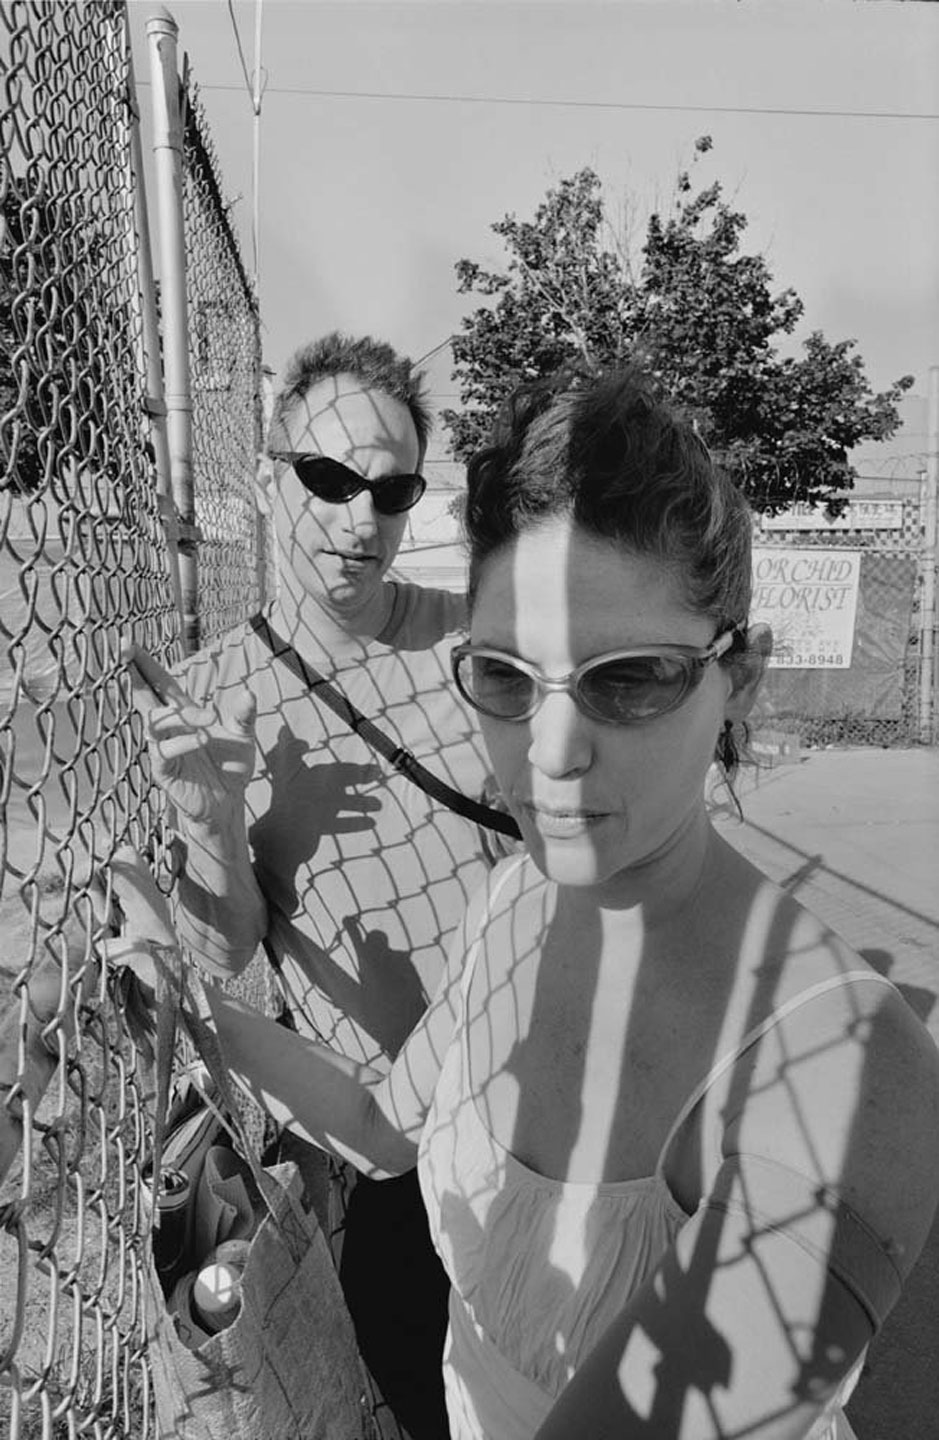 Lee Friedlander: Chain Link [SIGNED]